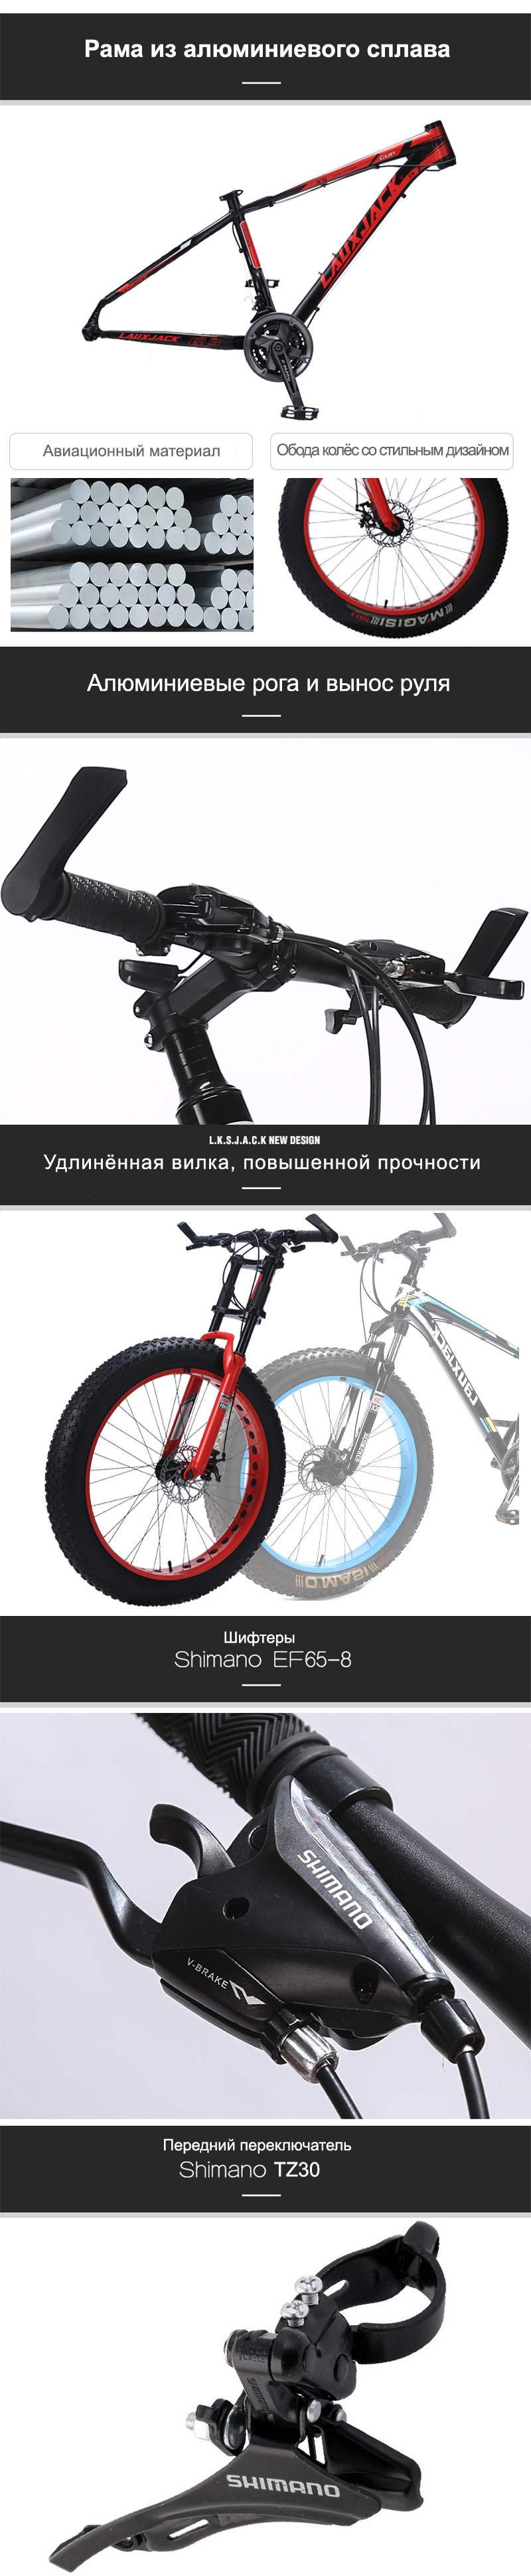 "HTB1ZYzTaYsTMeJjSsziq6AdwXXaR LAUXJACK Mountain bike aluminum frame 24 speed Shimano mechanical brakes 26 ""x4.0 wheels long fork FatBike"